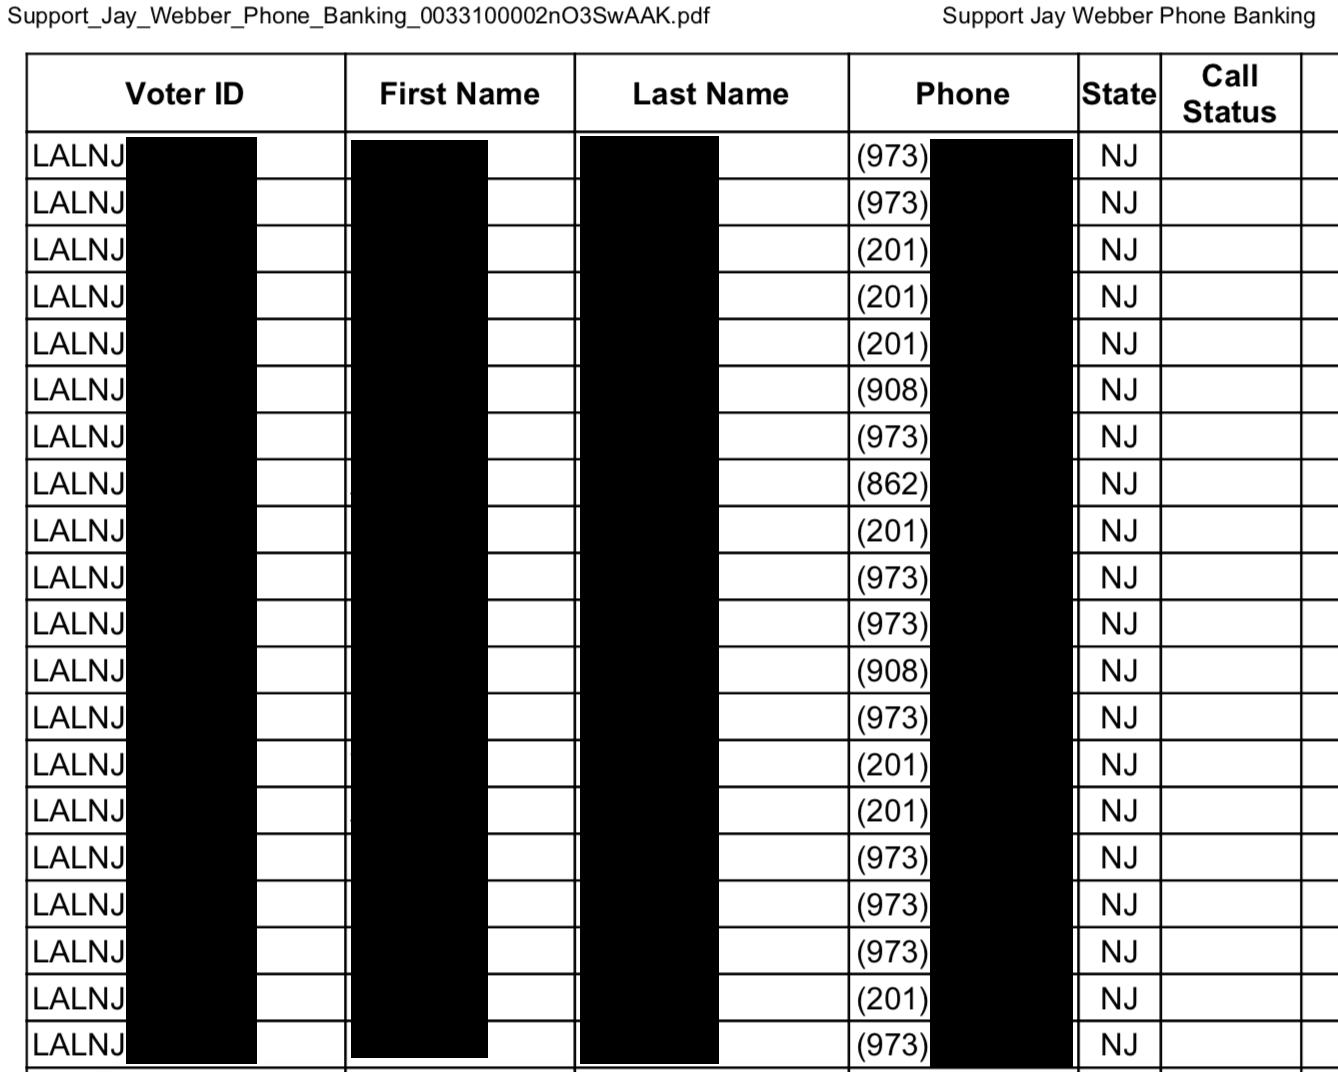 Redacted screenshot of a TPPCF Support Jay Webber Call List